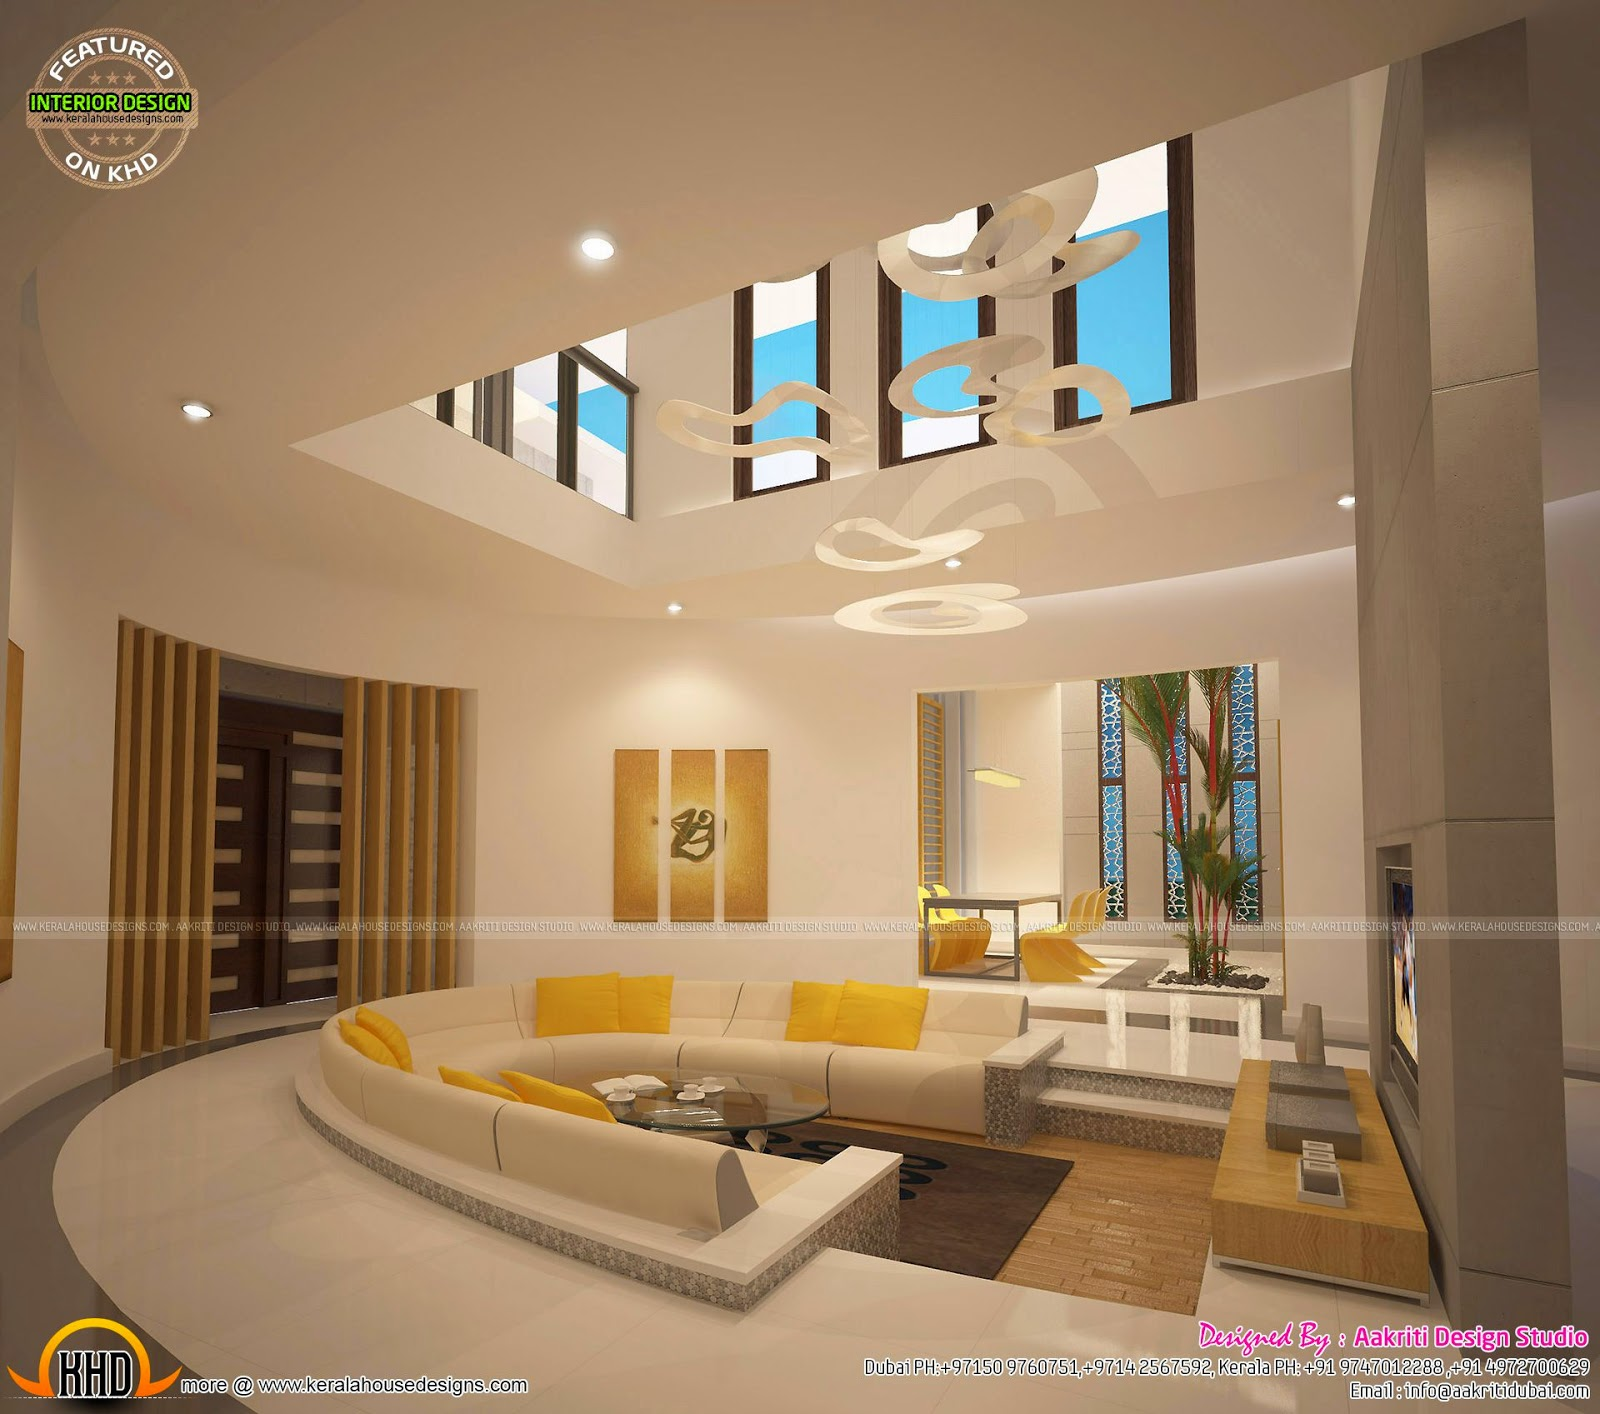 Awesome interiors of living kitchen and bathroom kerala - Interior home design pic ...